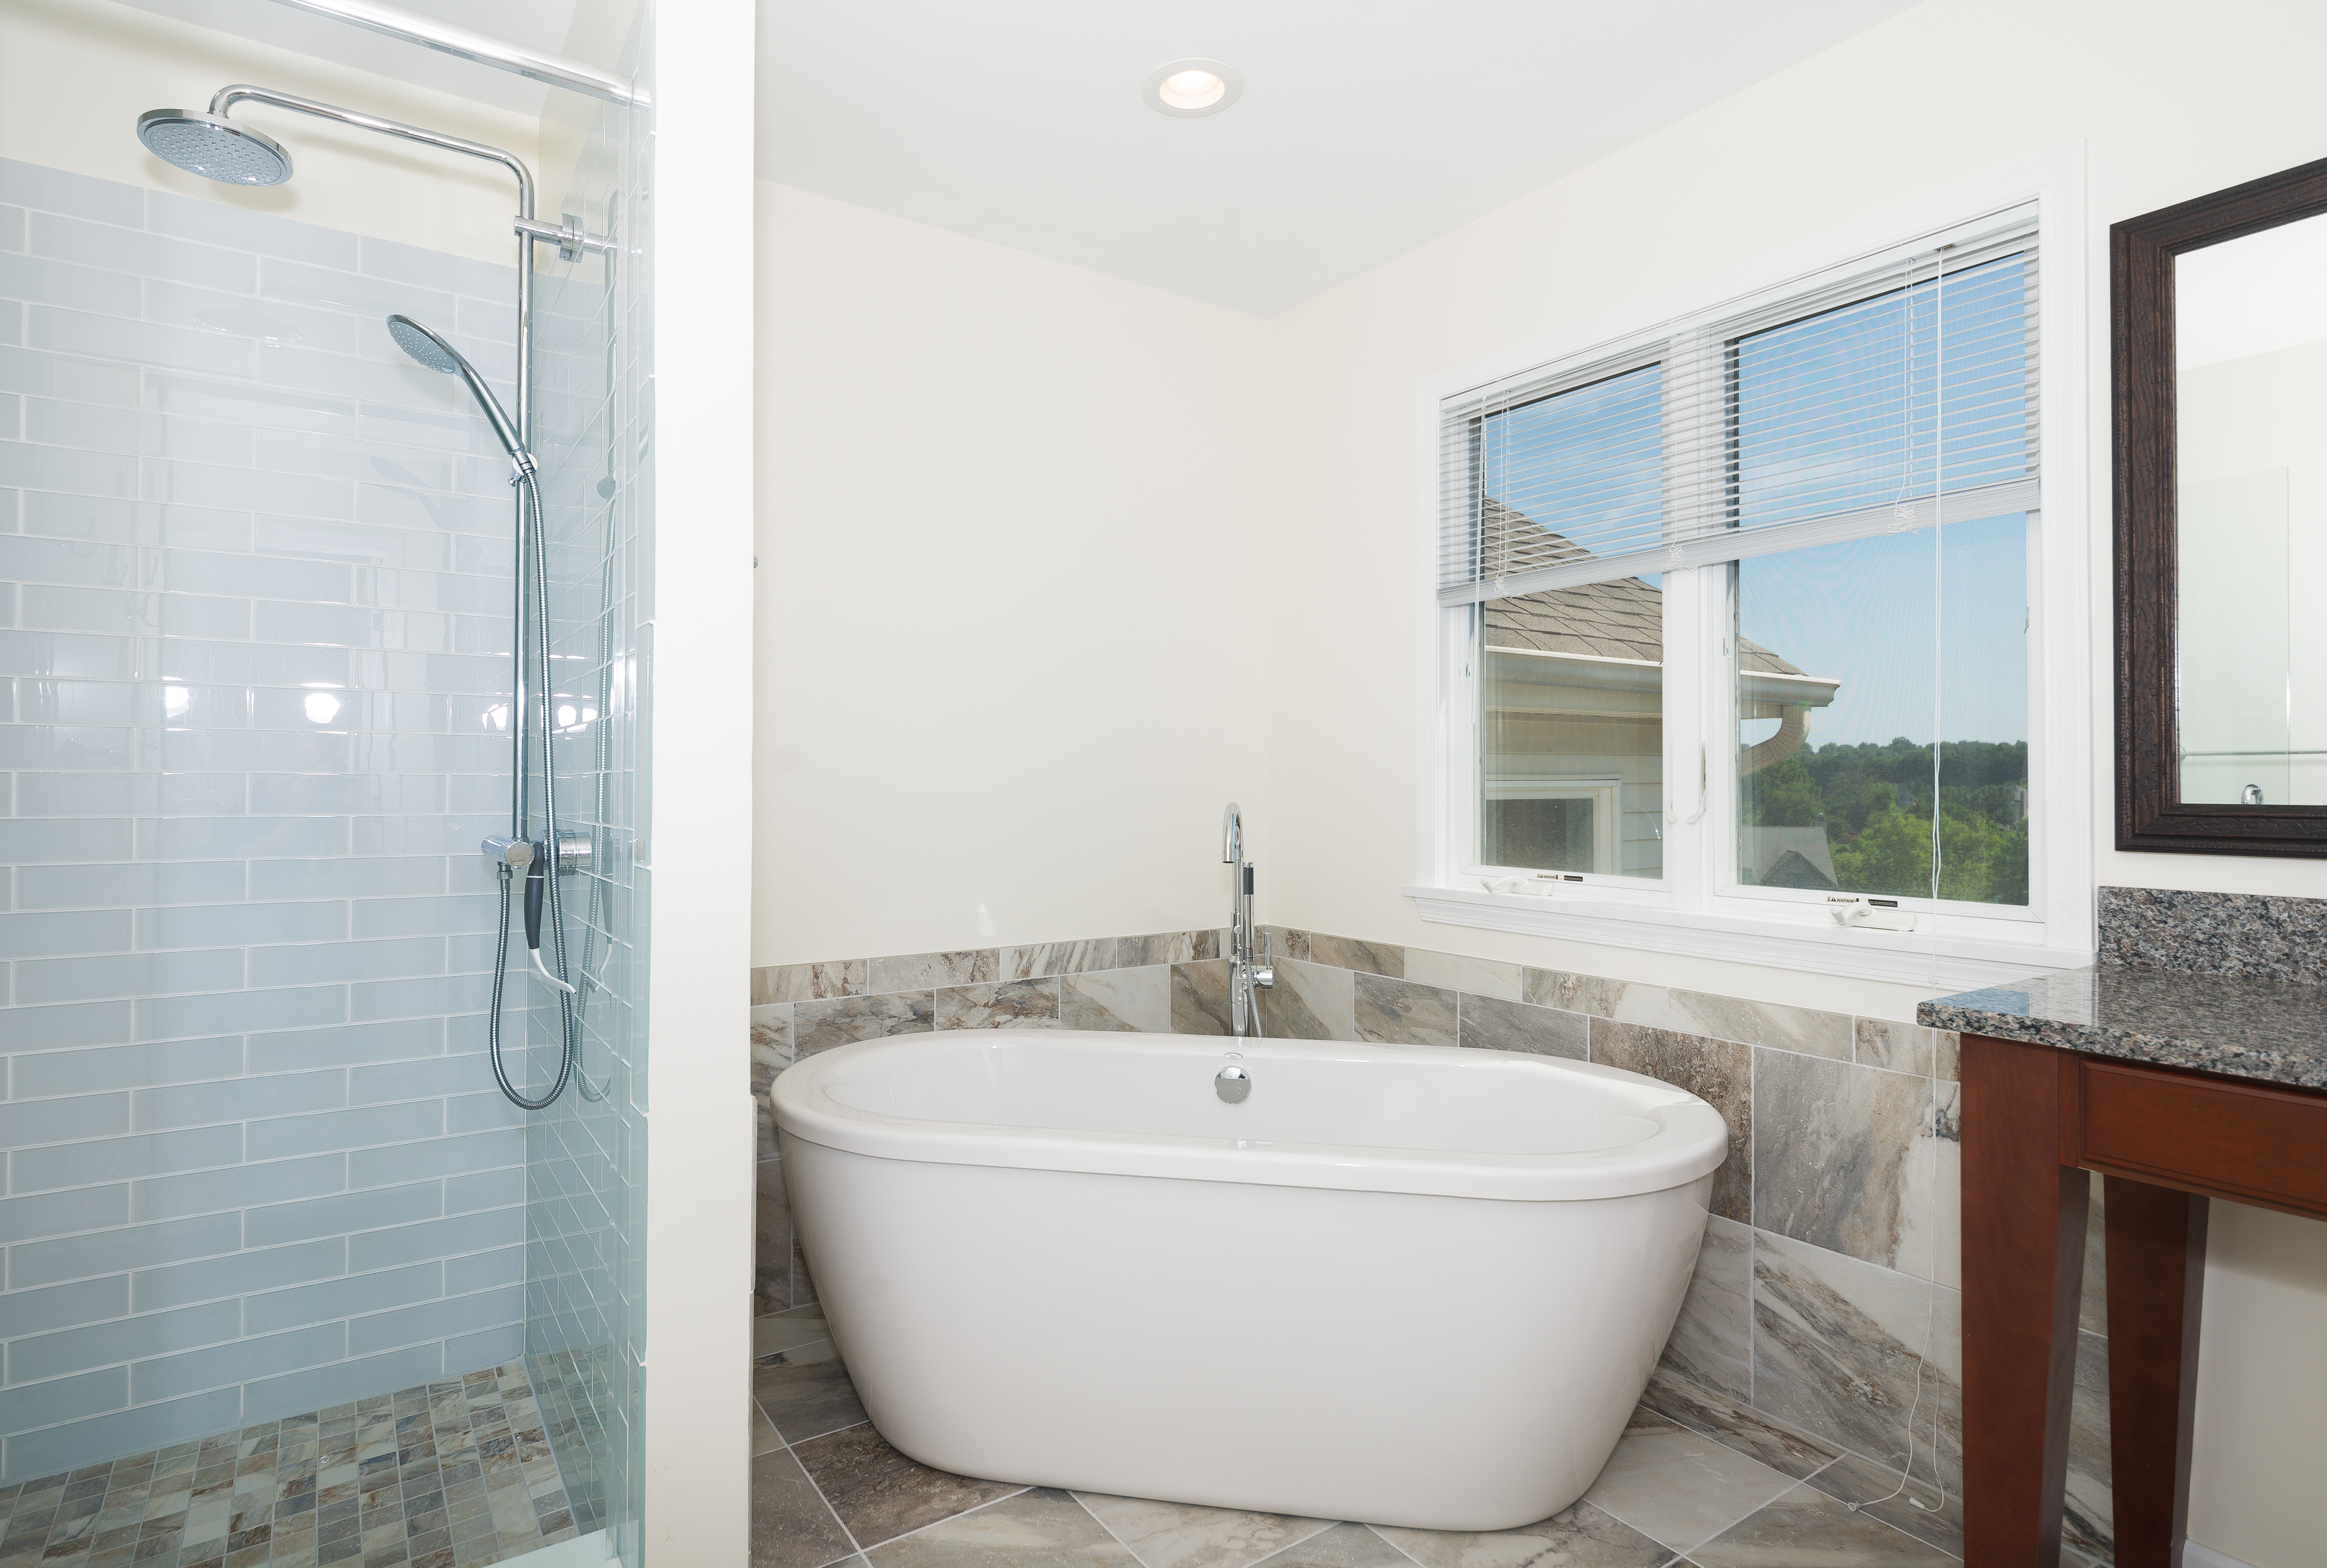 Beautiful master bathroom msi plumbing remodeling for Plumbing remodeling